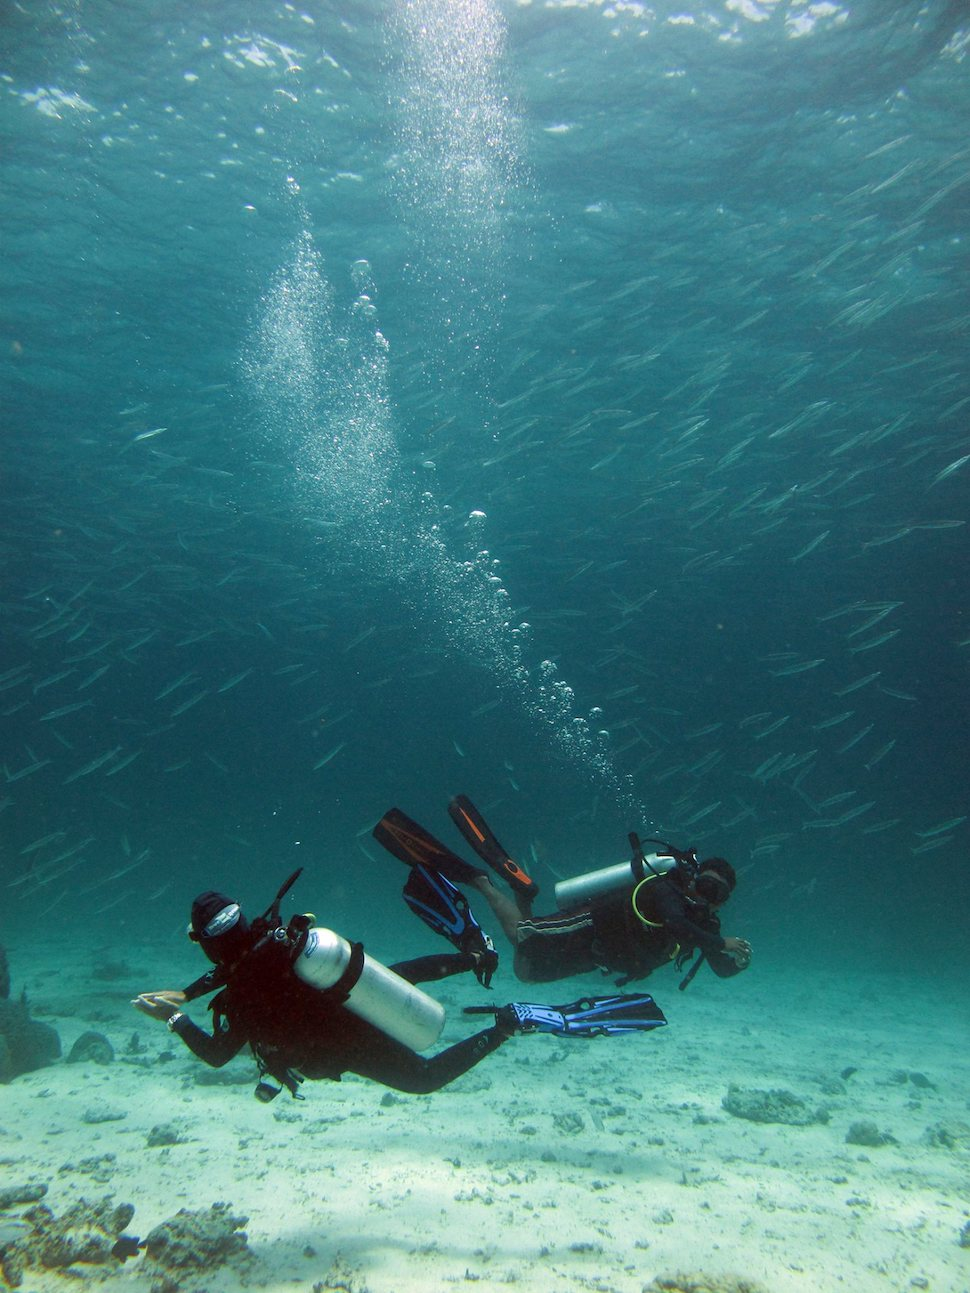 Dive and relax koh lanta thailand cartogramme - Dive and relax koh lanta ...